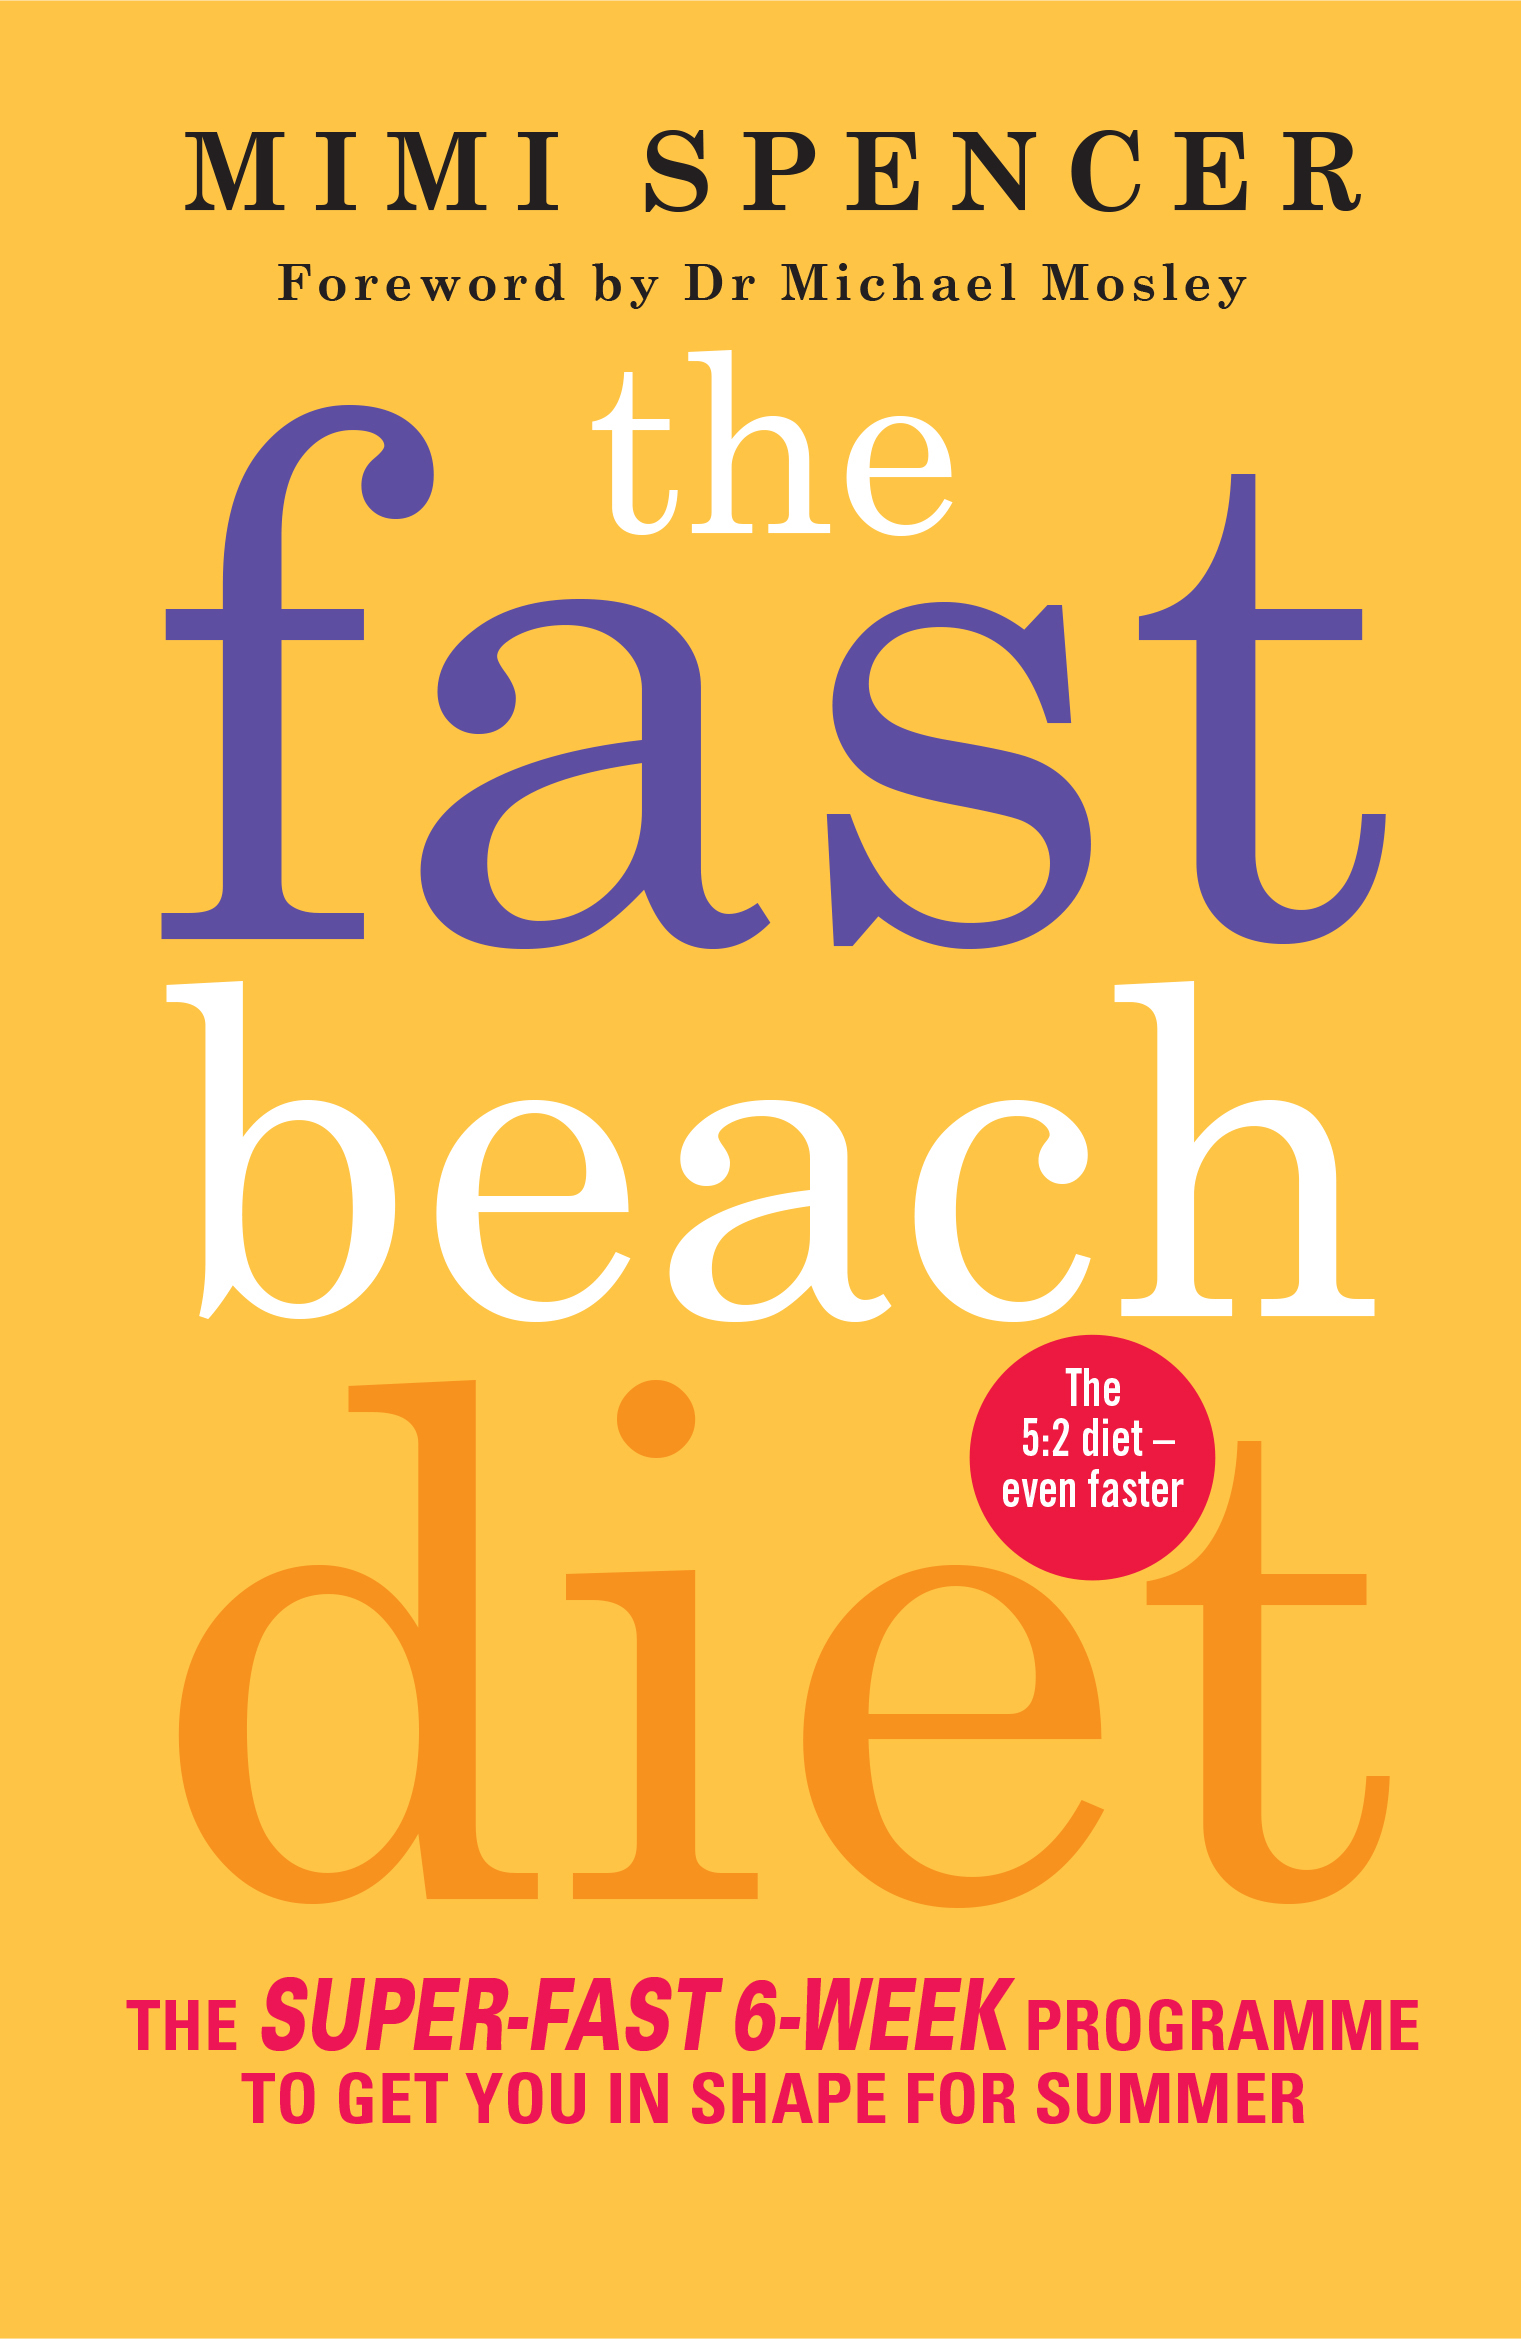 The Fast Beach Diet - Mimi Spencer, foreword by Dr Michael Mosley - 9781780722245 - Allen ...